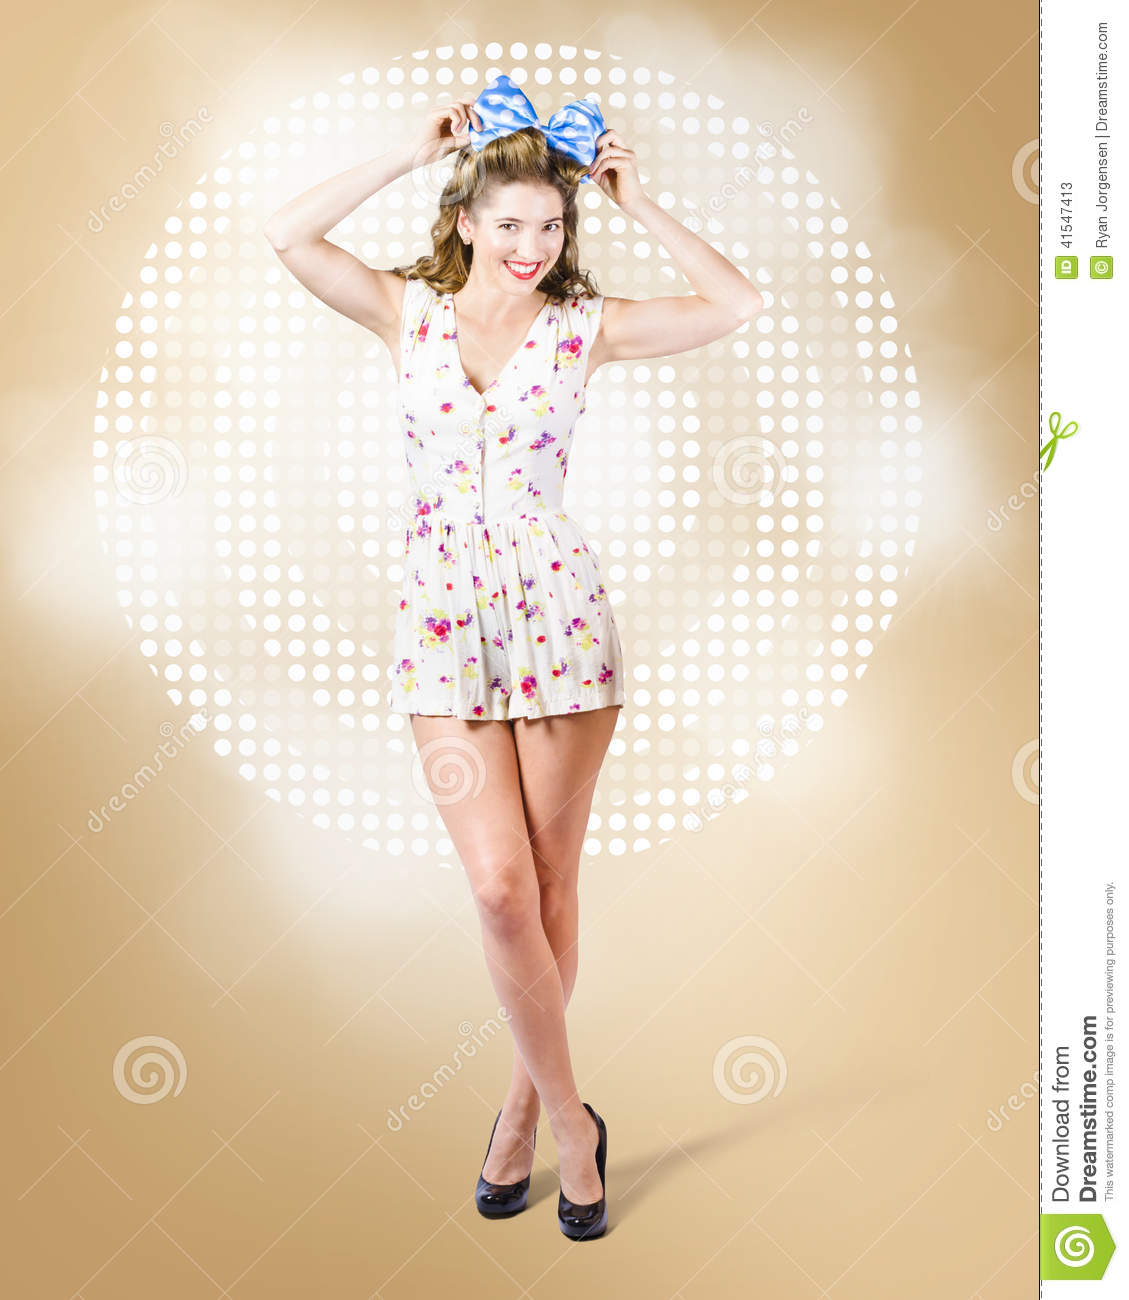 Modelling Pinup Girl Wearing Bow Hair Accessory Stock Photo Image 41547413